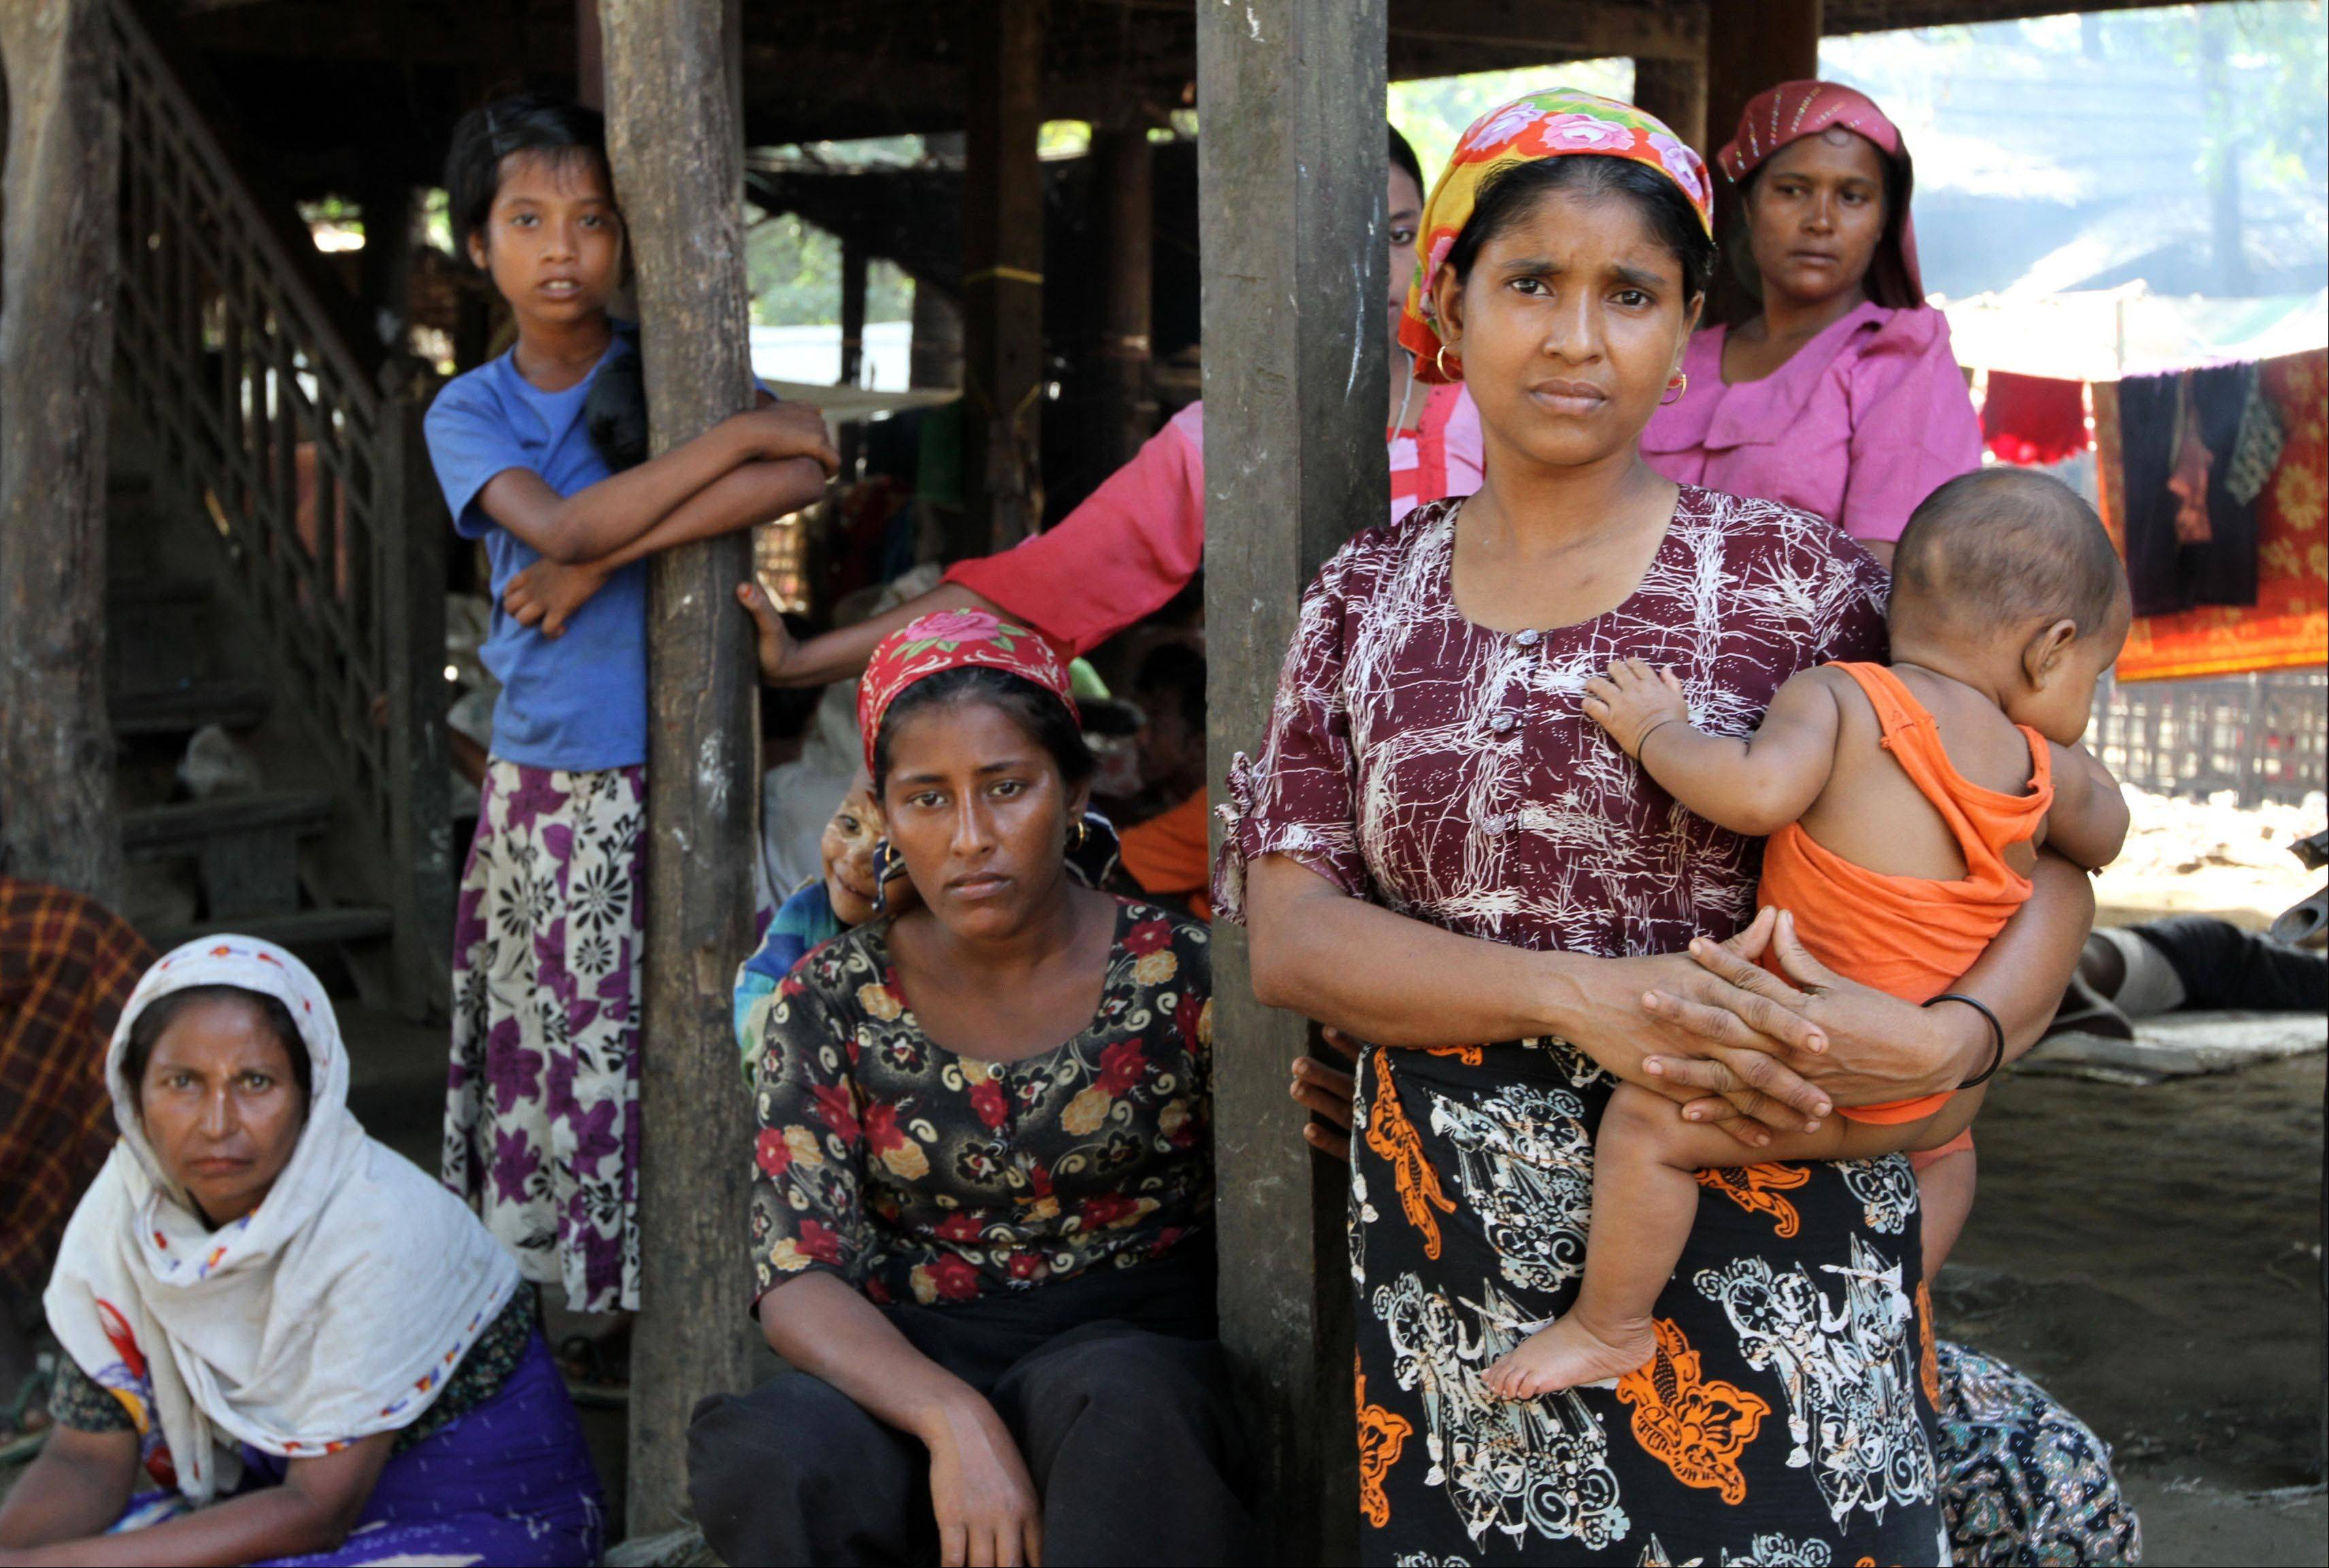 Muslim women gather at the Thae-Chaung refugee camp in Sittwe, Rakhine State, western Myanmar, Monday. Myanmar's government said Monday it has boosted security in the western state hit by ethnic and sectarian unrest as the number of displaced rose to 28,000 people, mostly Muslims.